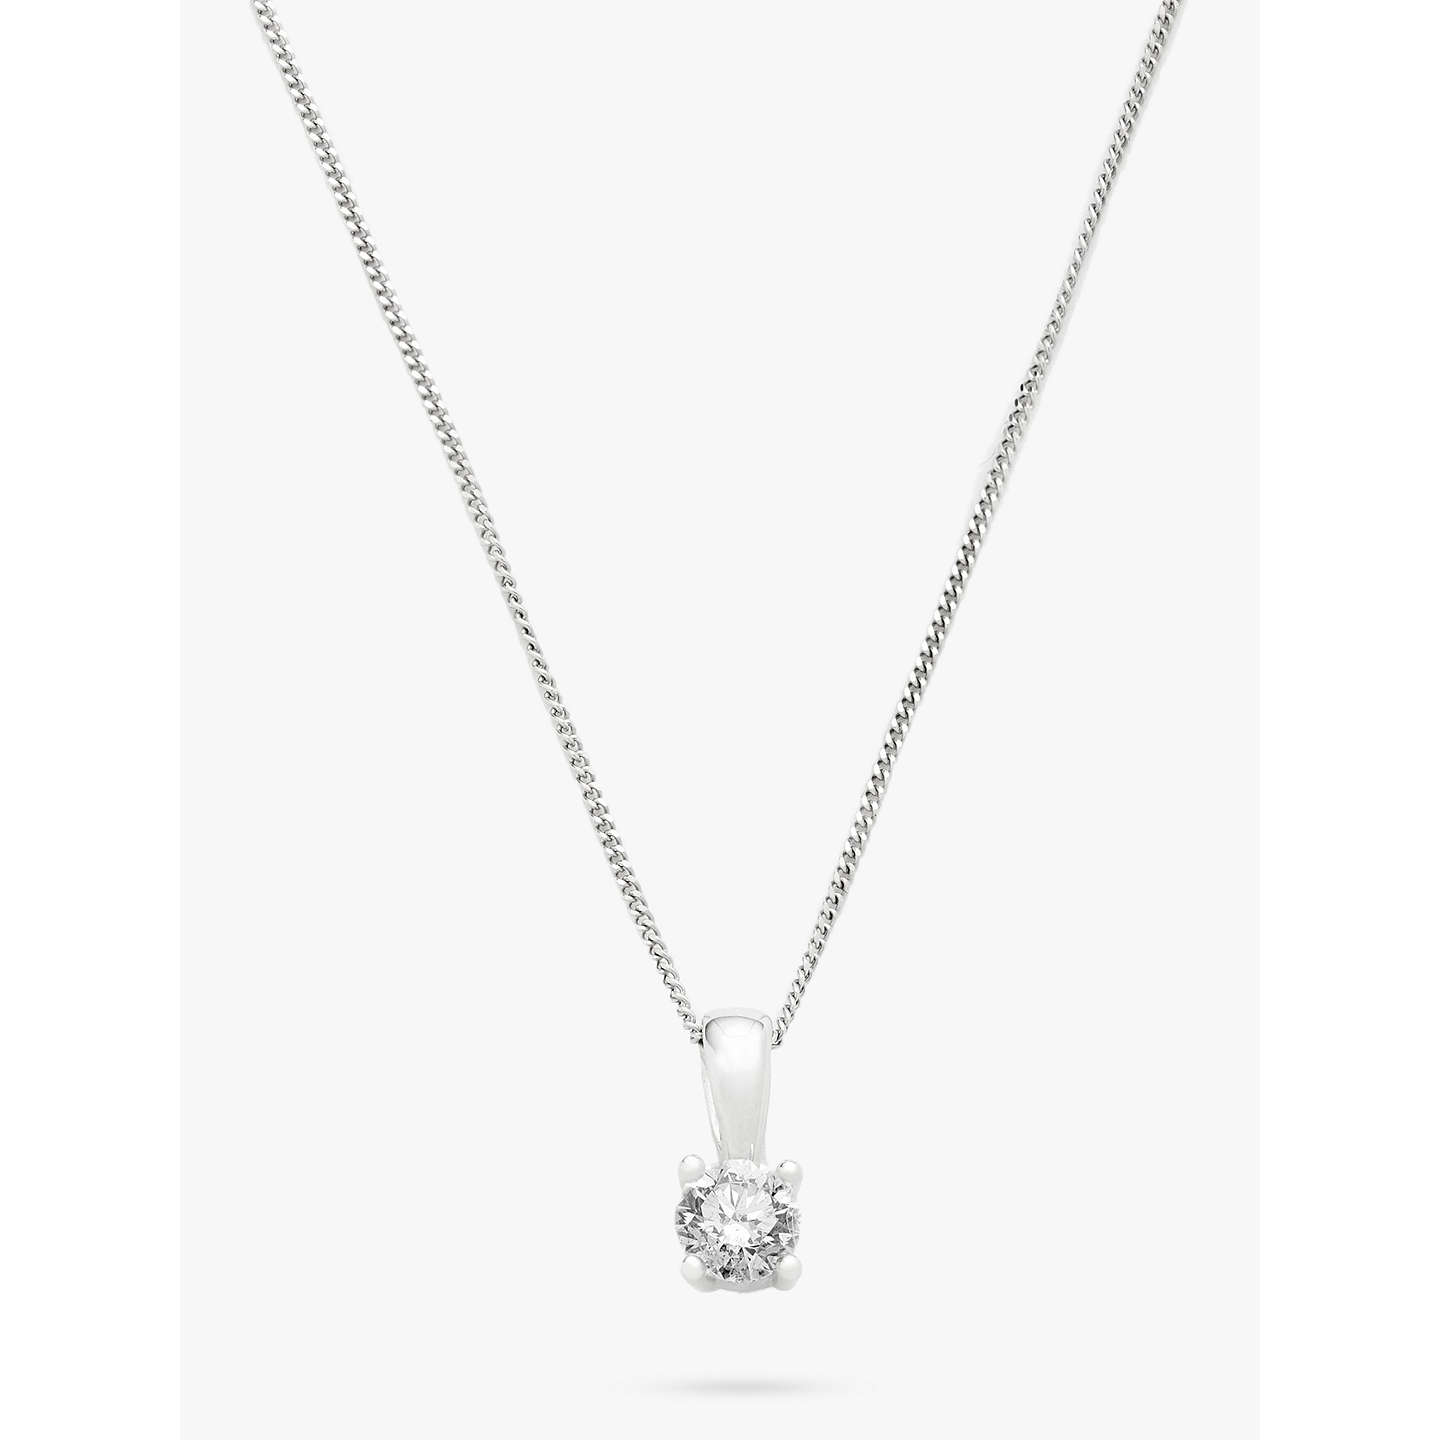 ed co m tiffany diamond platinum pendant shopping solitaire in item